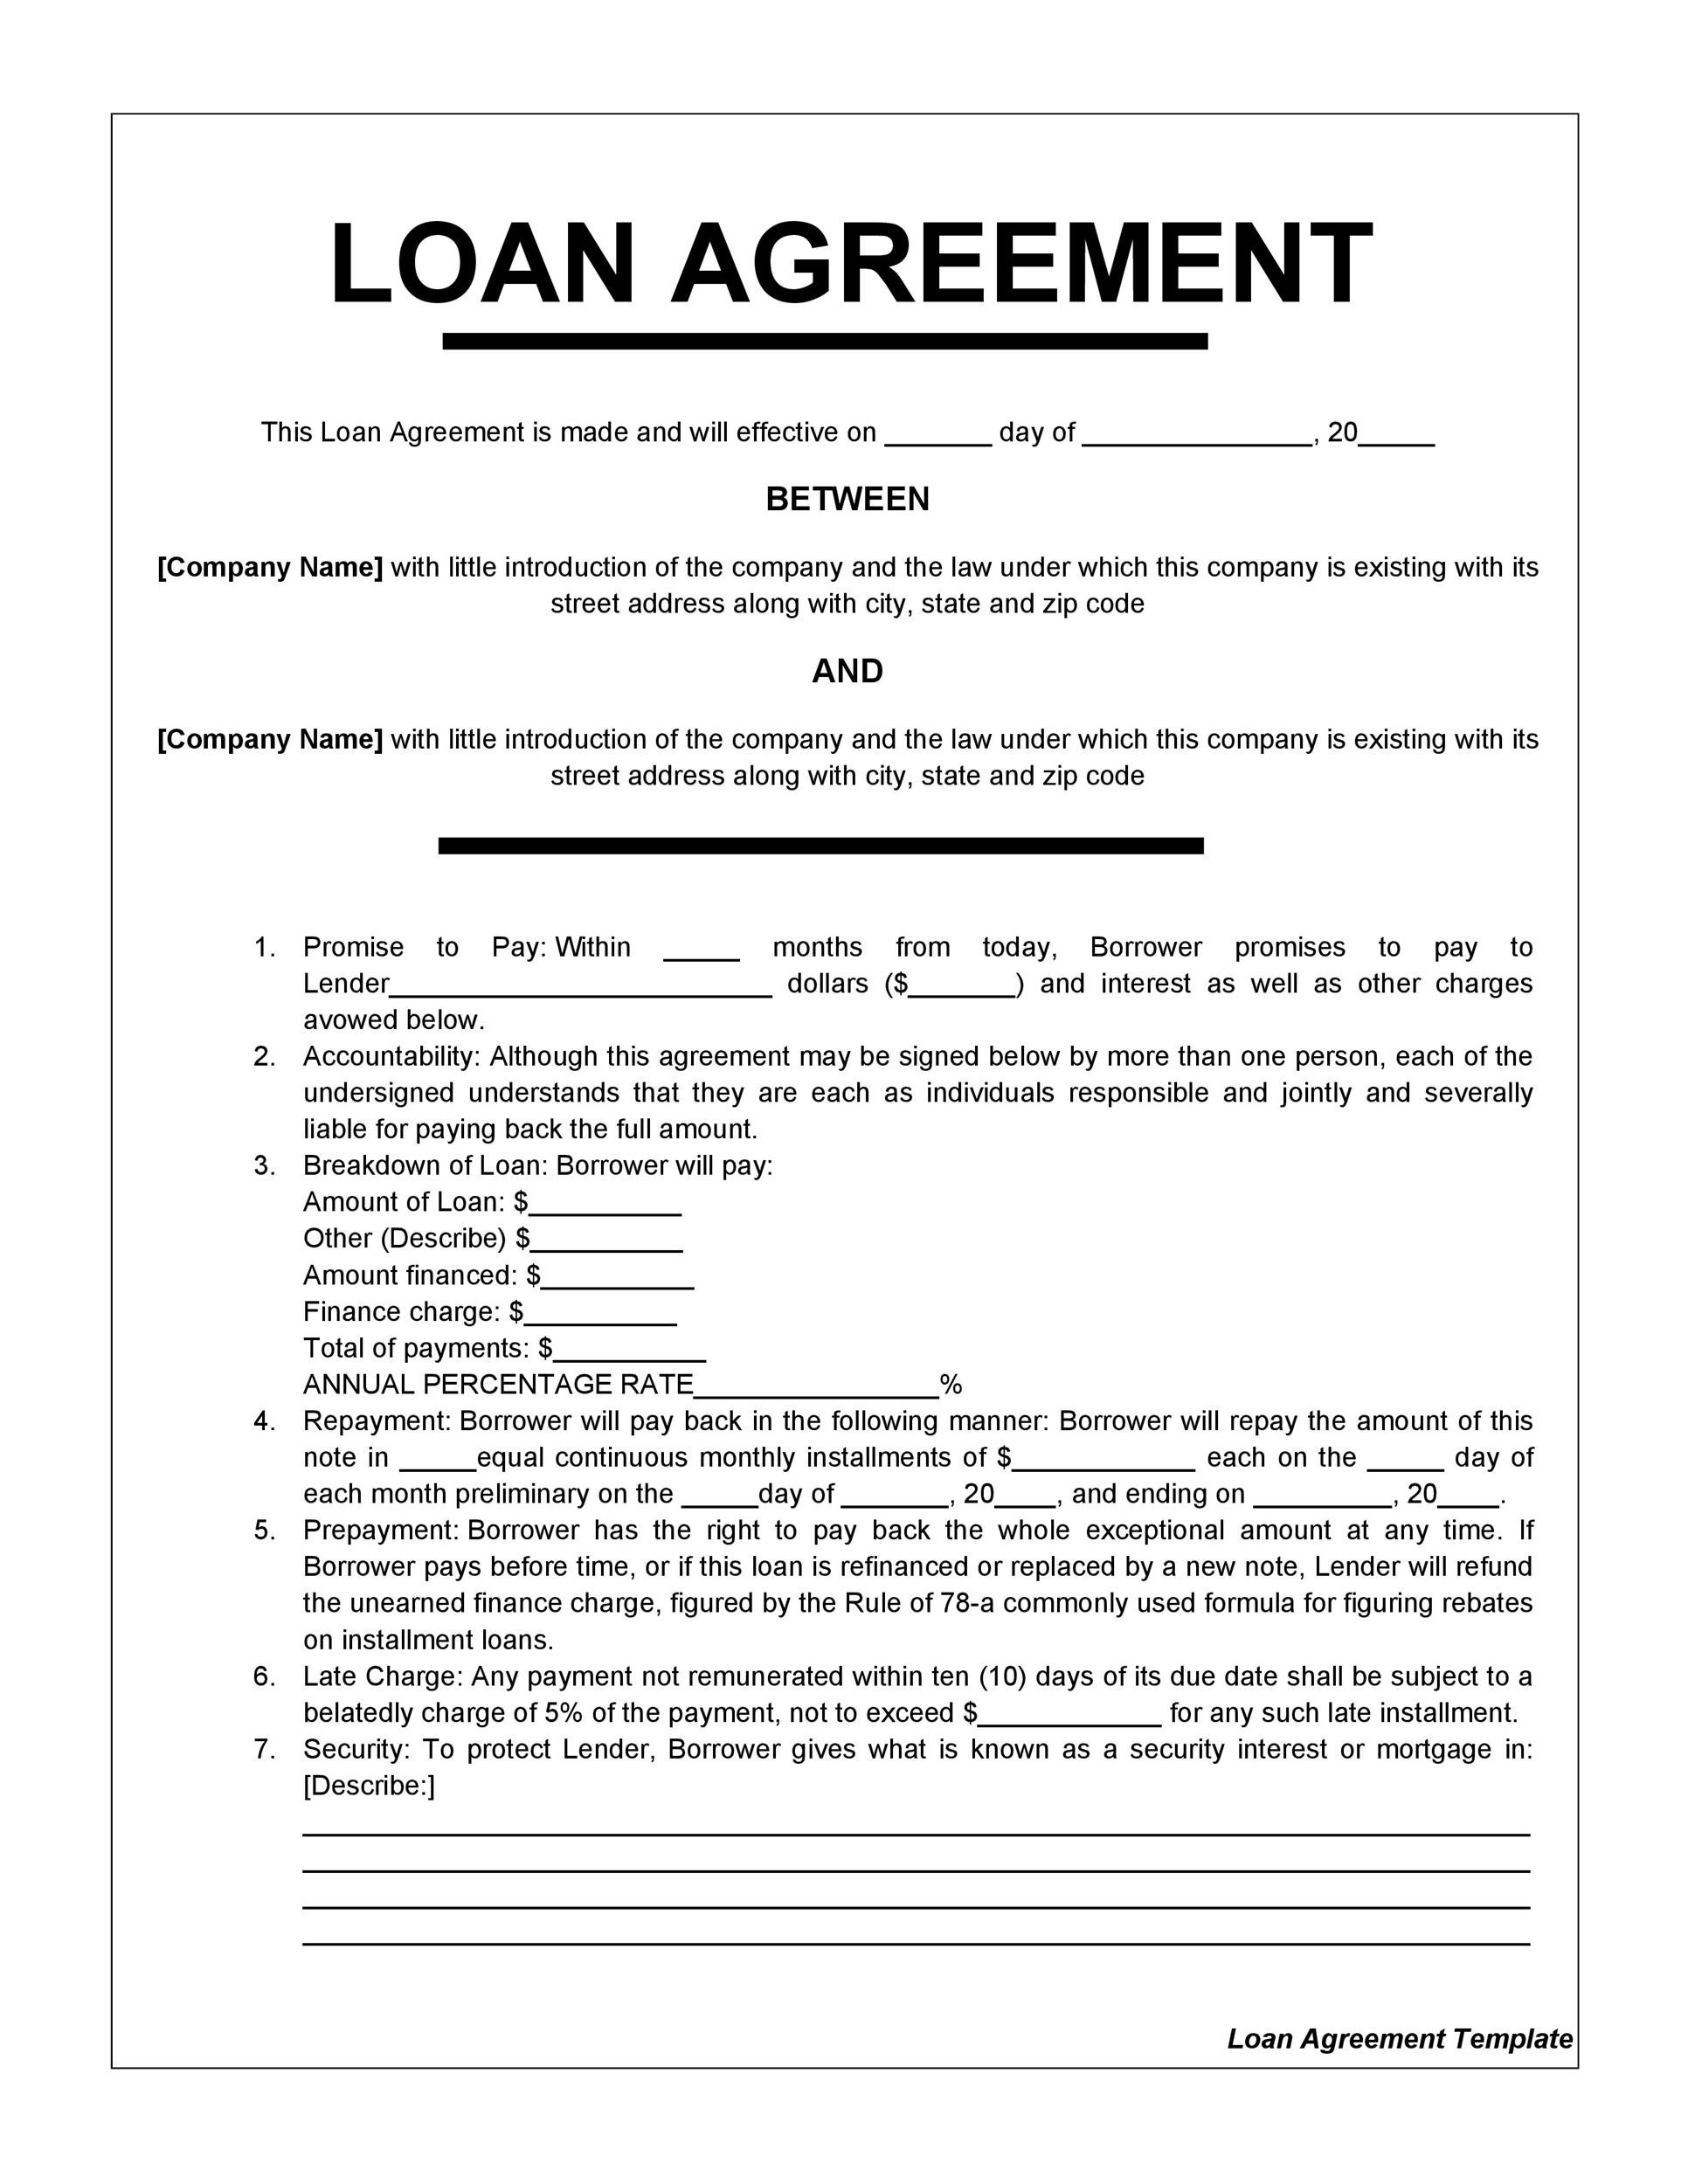 loan contract 40 free loan agreement templates